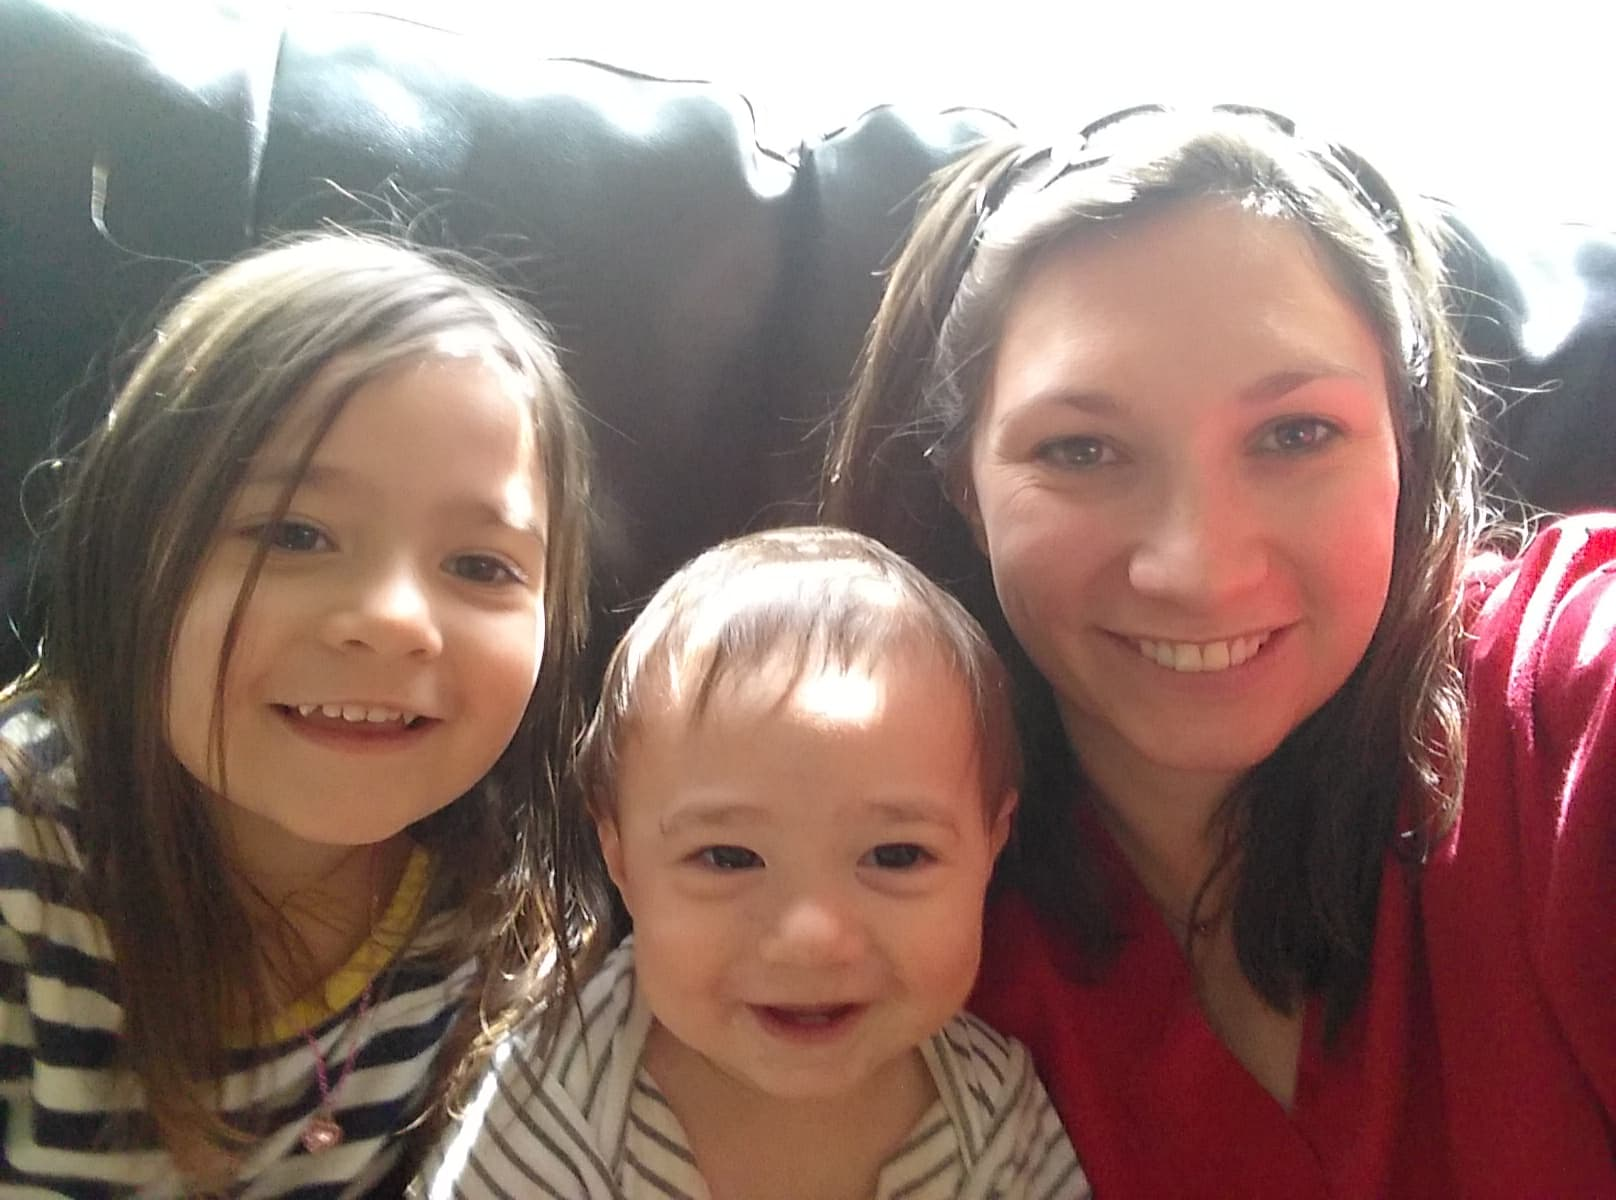 Grant recipient of the Pink Fund with her two children